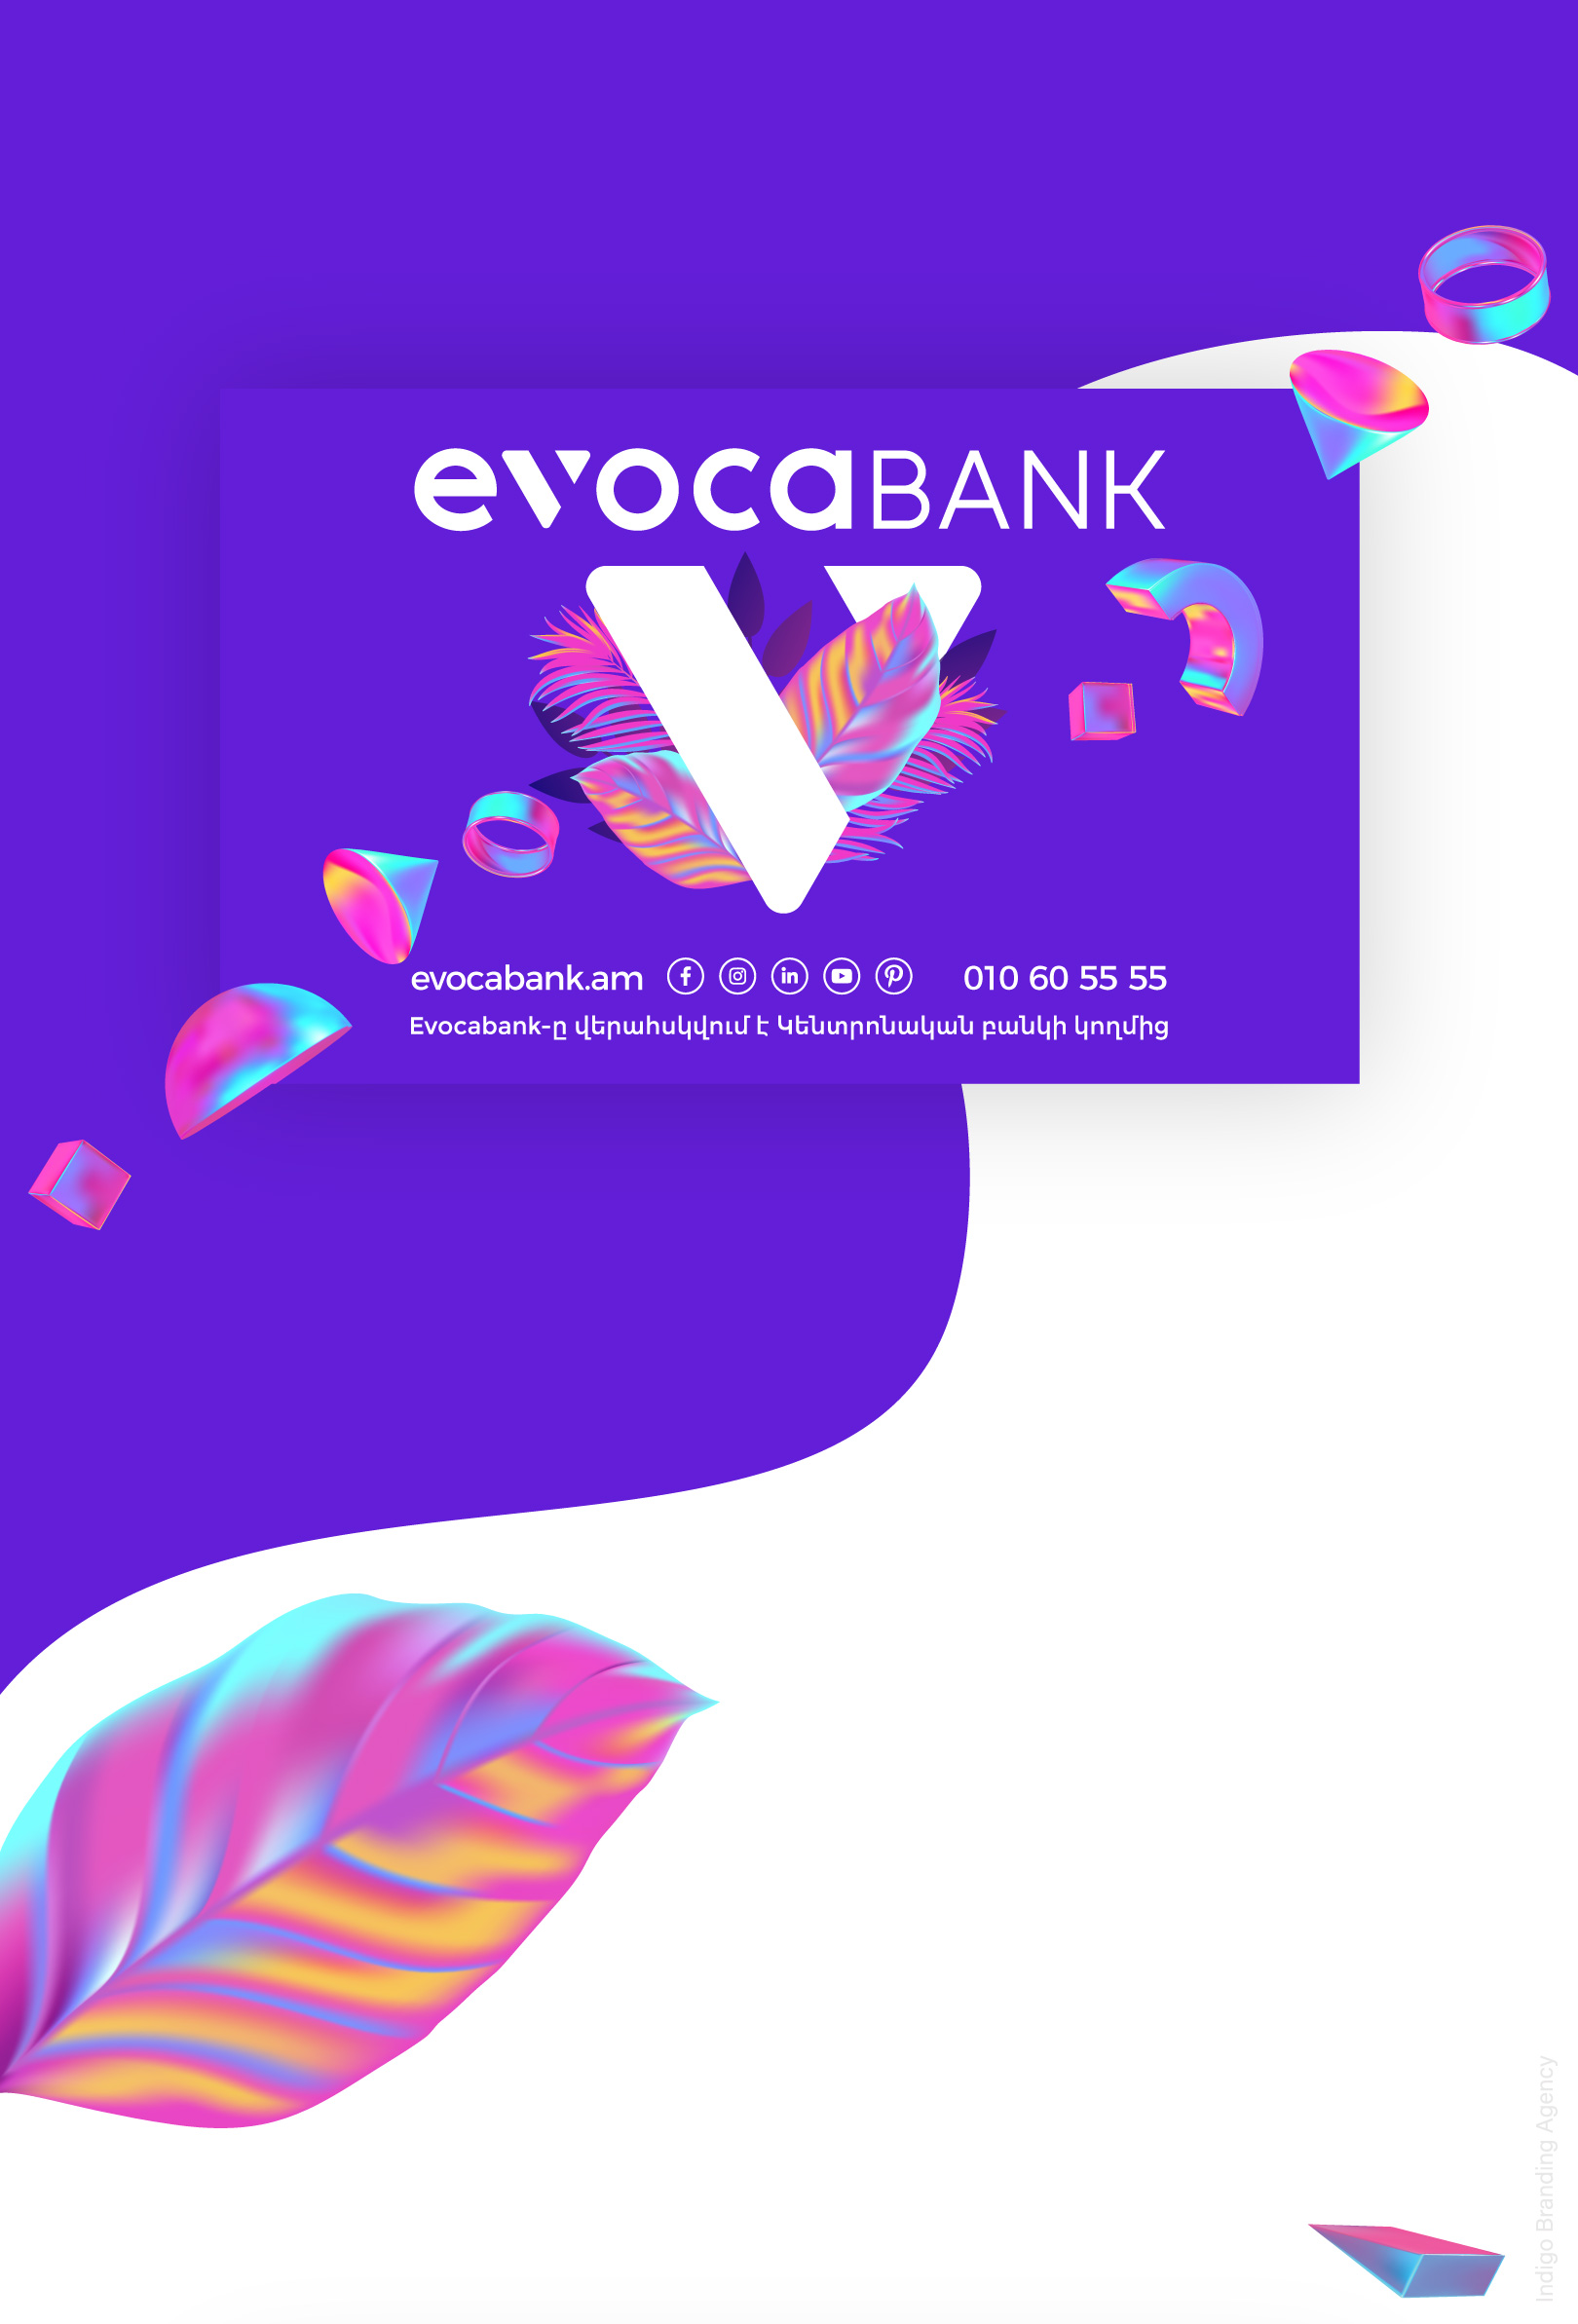 Evocabank Indigo summer billboard design